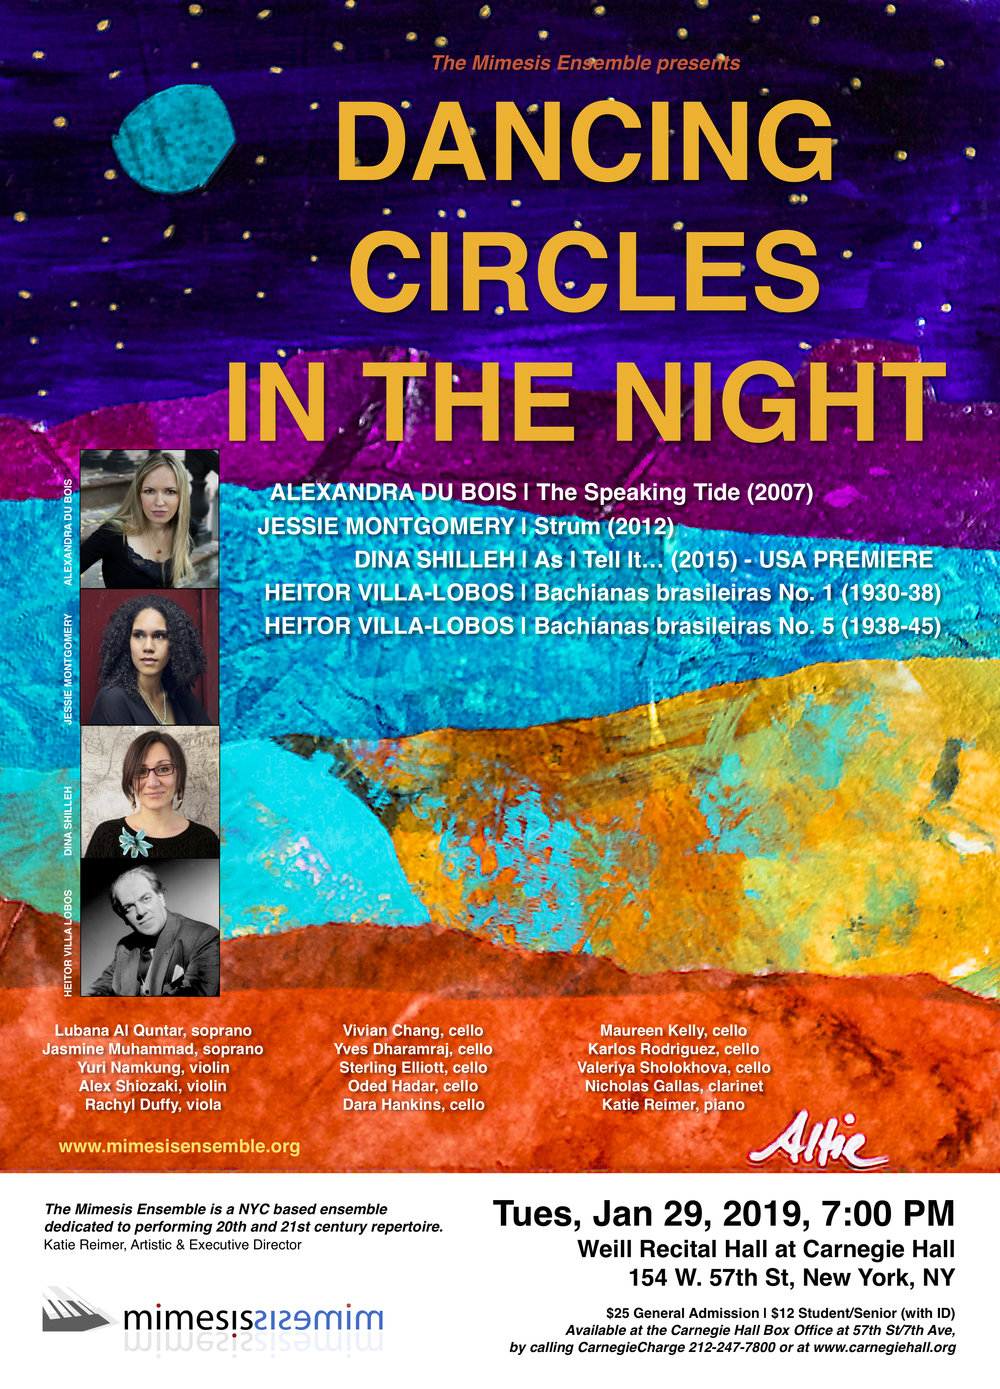 Jan 29, 2019 - Dancing Circles In the Night - LARGE POSTER FOR CARNEGIE copy.jpg